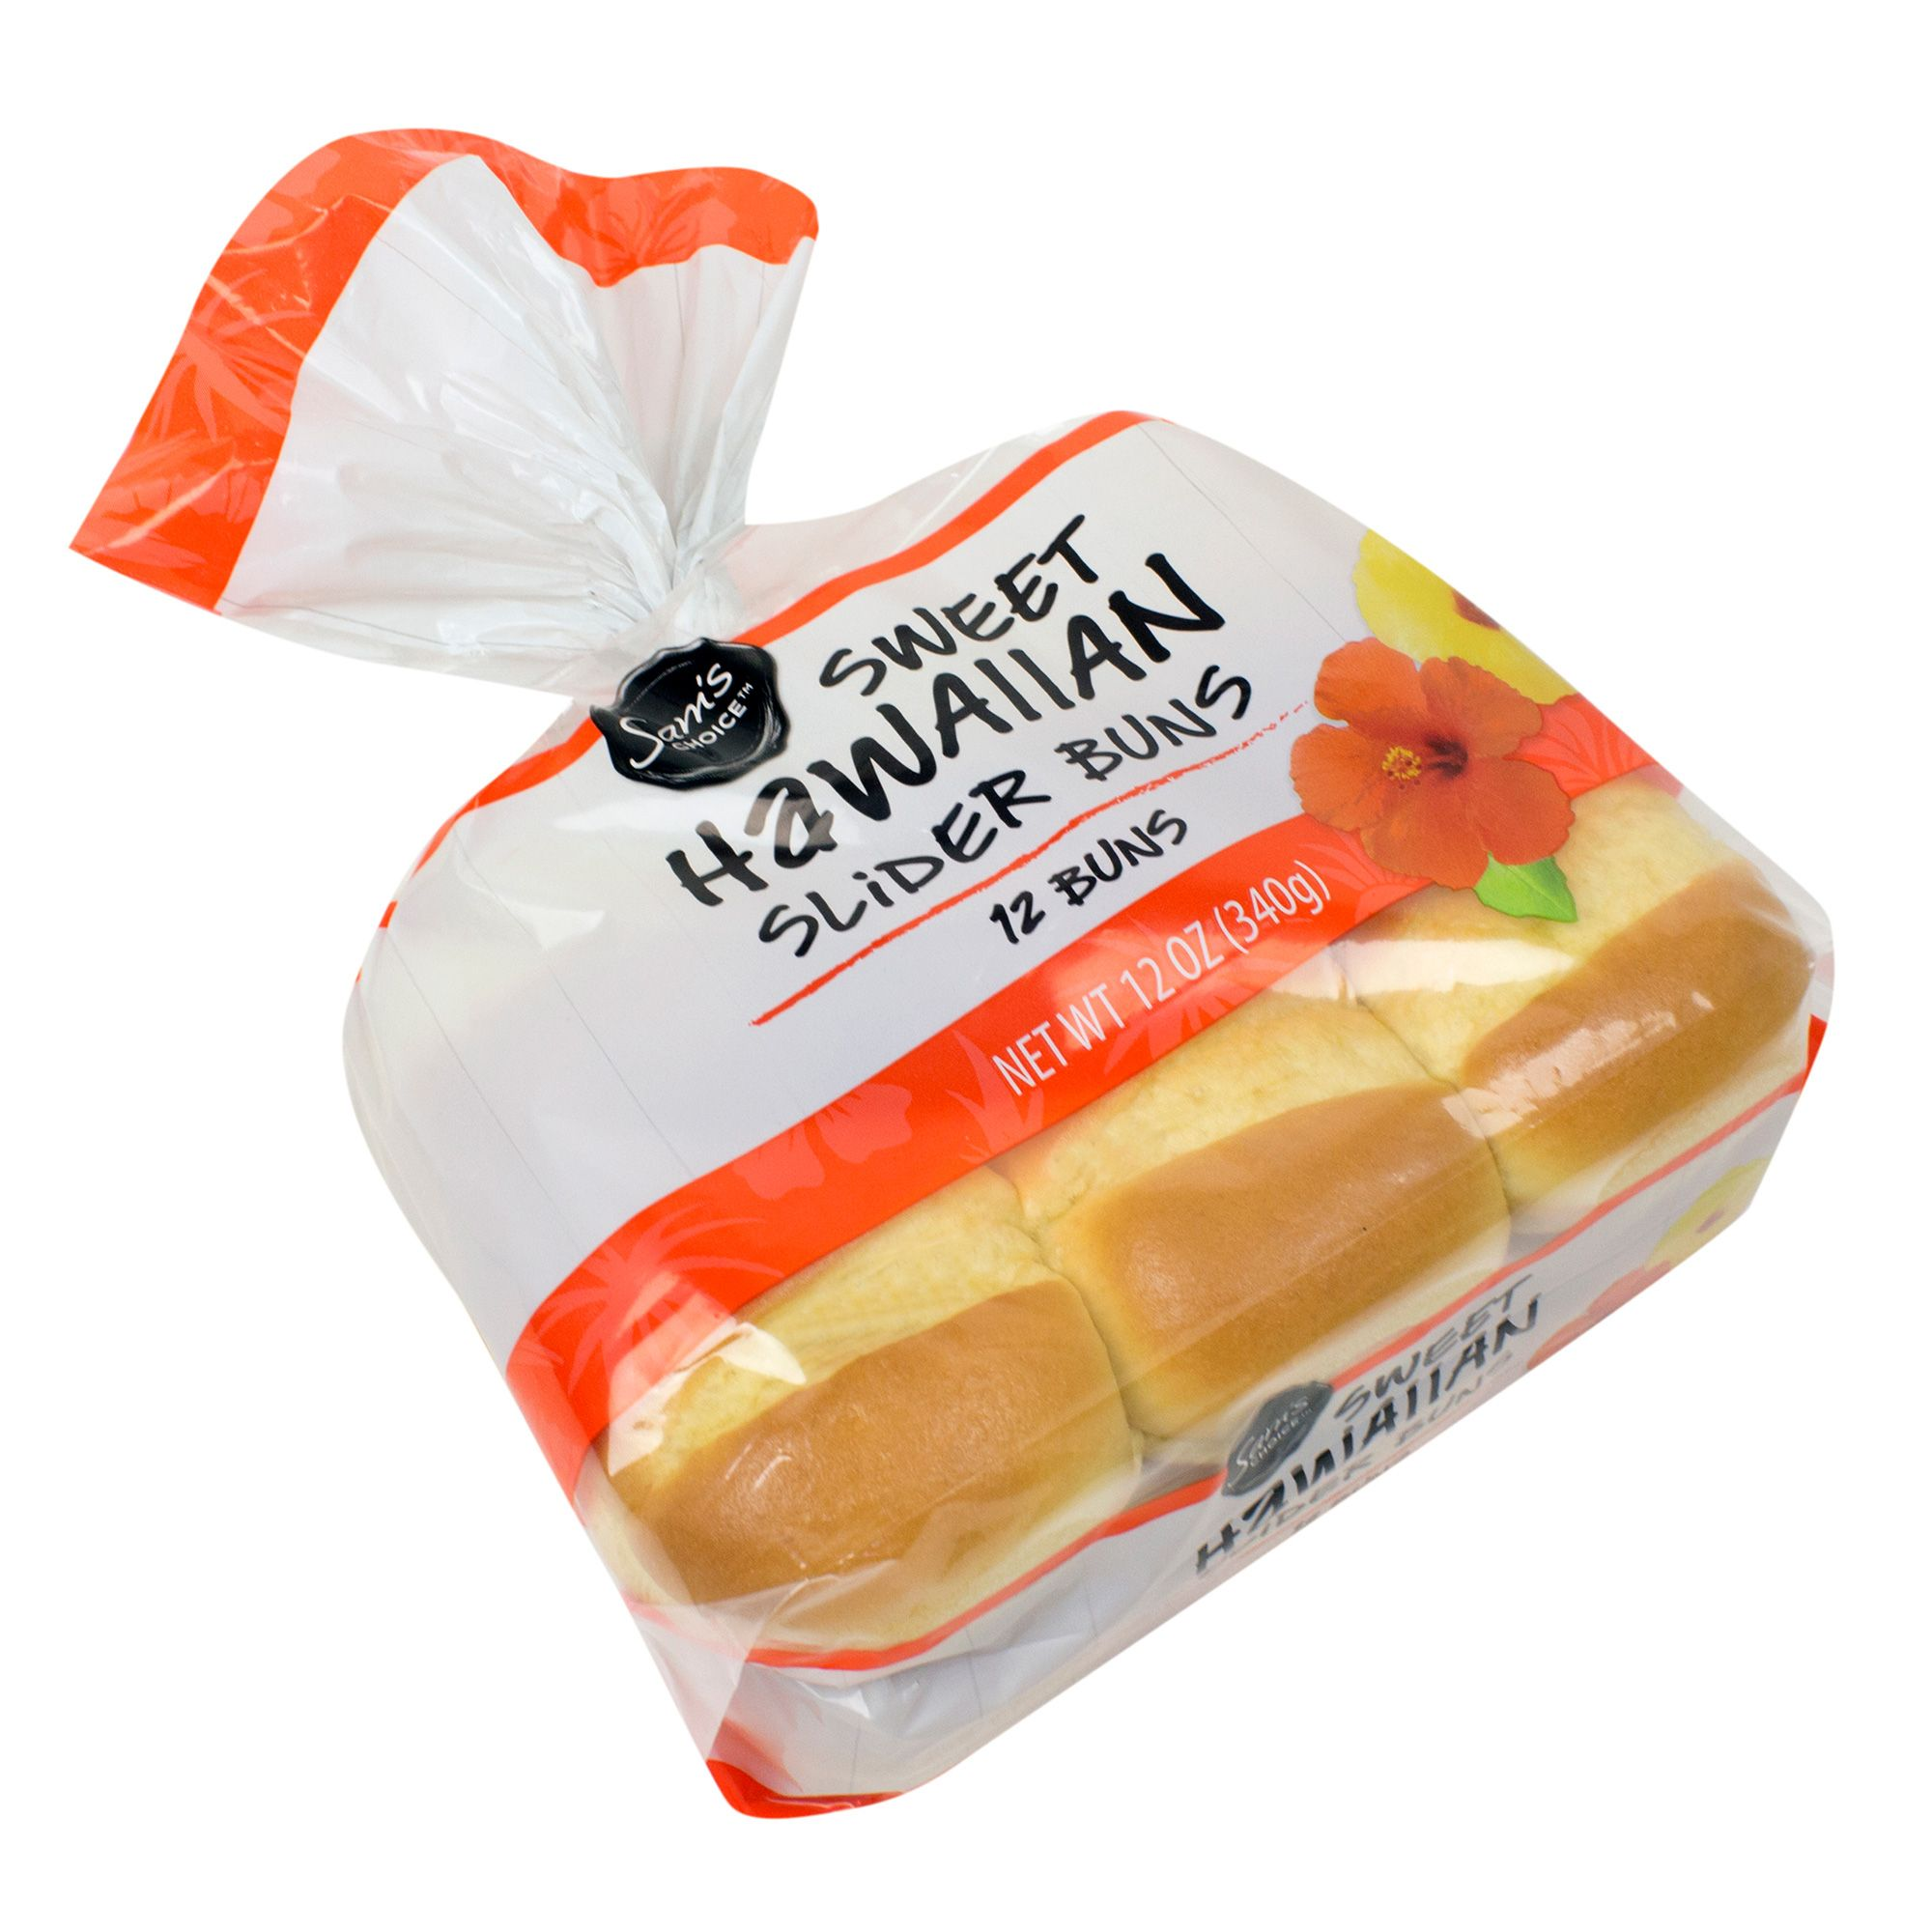 Pin By Name Berry On 670 Edgar Montfaucon Slider Buns Hawaiian Sliders Filling Recipes